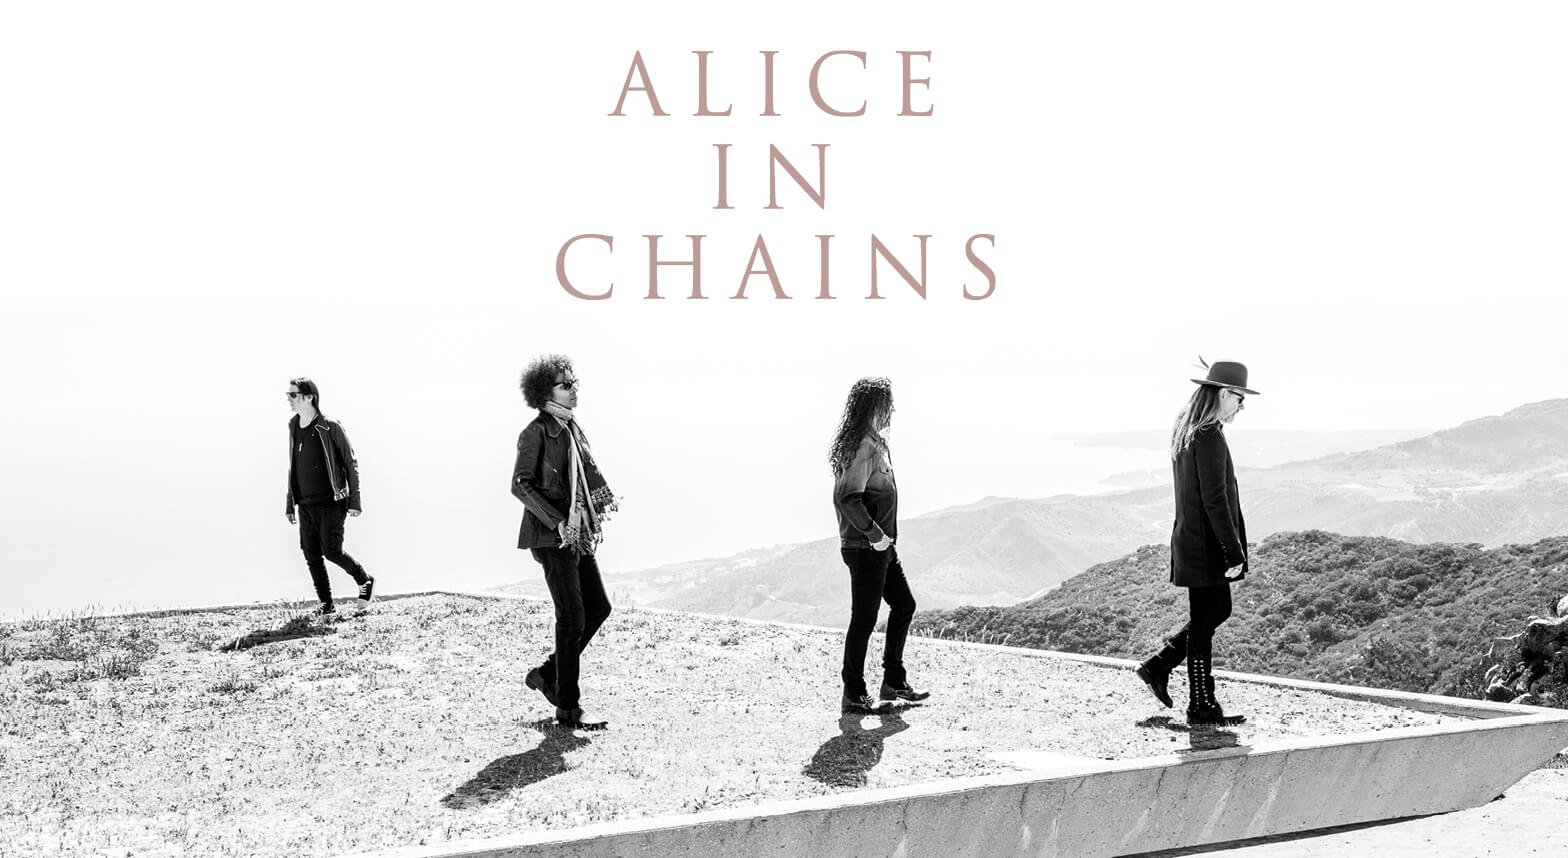 alice-in-chains-arenasV1.jpg